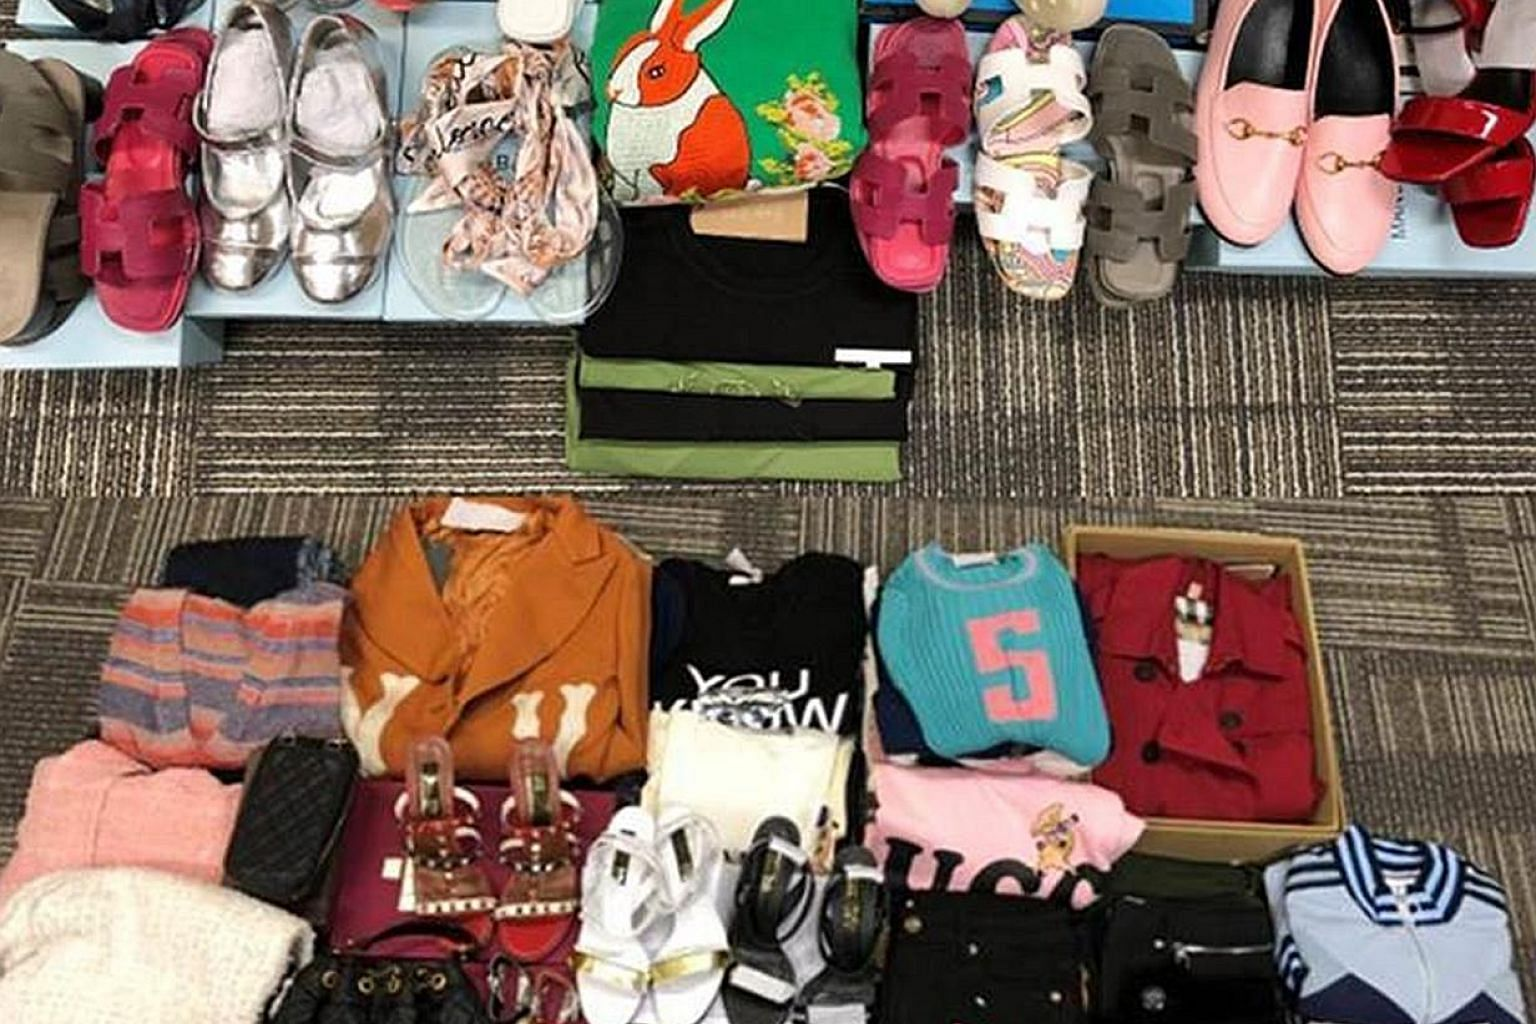 Over 500 pieces of fake luxury goods such as footwear, watches and bags were seized in raids on seven retail outlets.